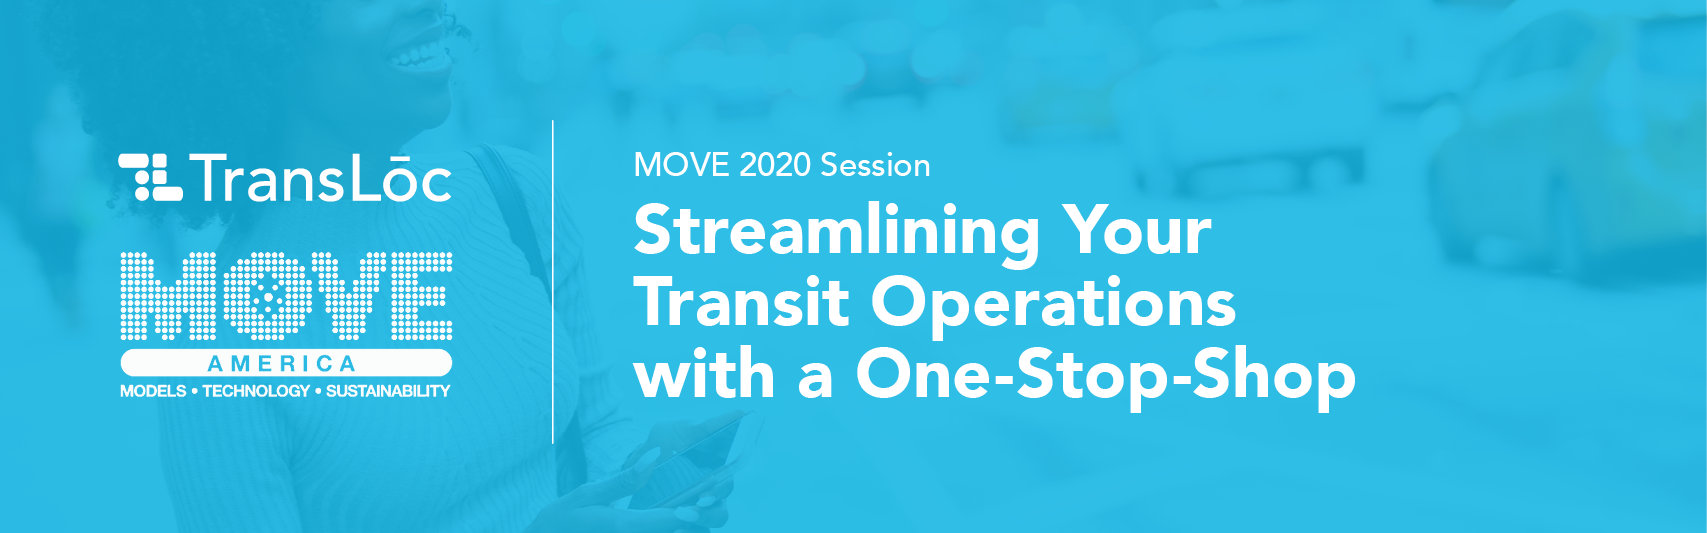 Streamlining Your Transit Operations with a One-Stop-Shop